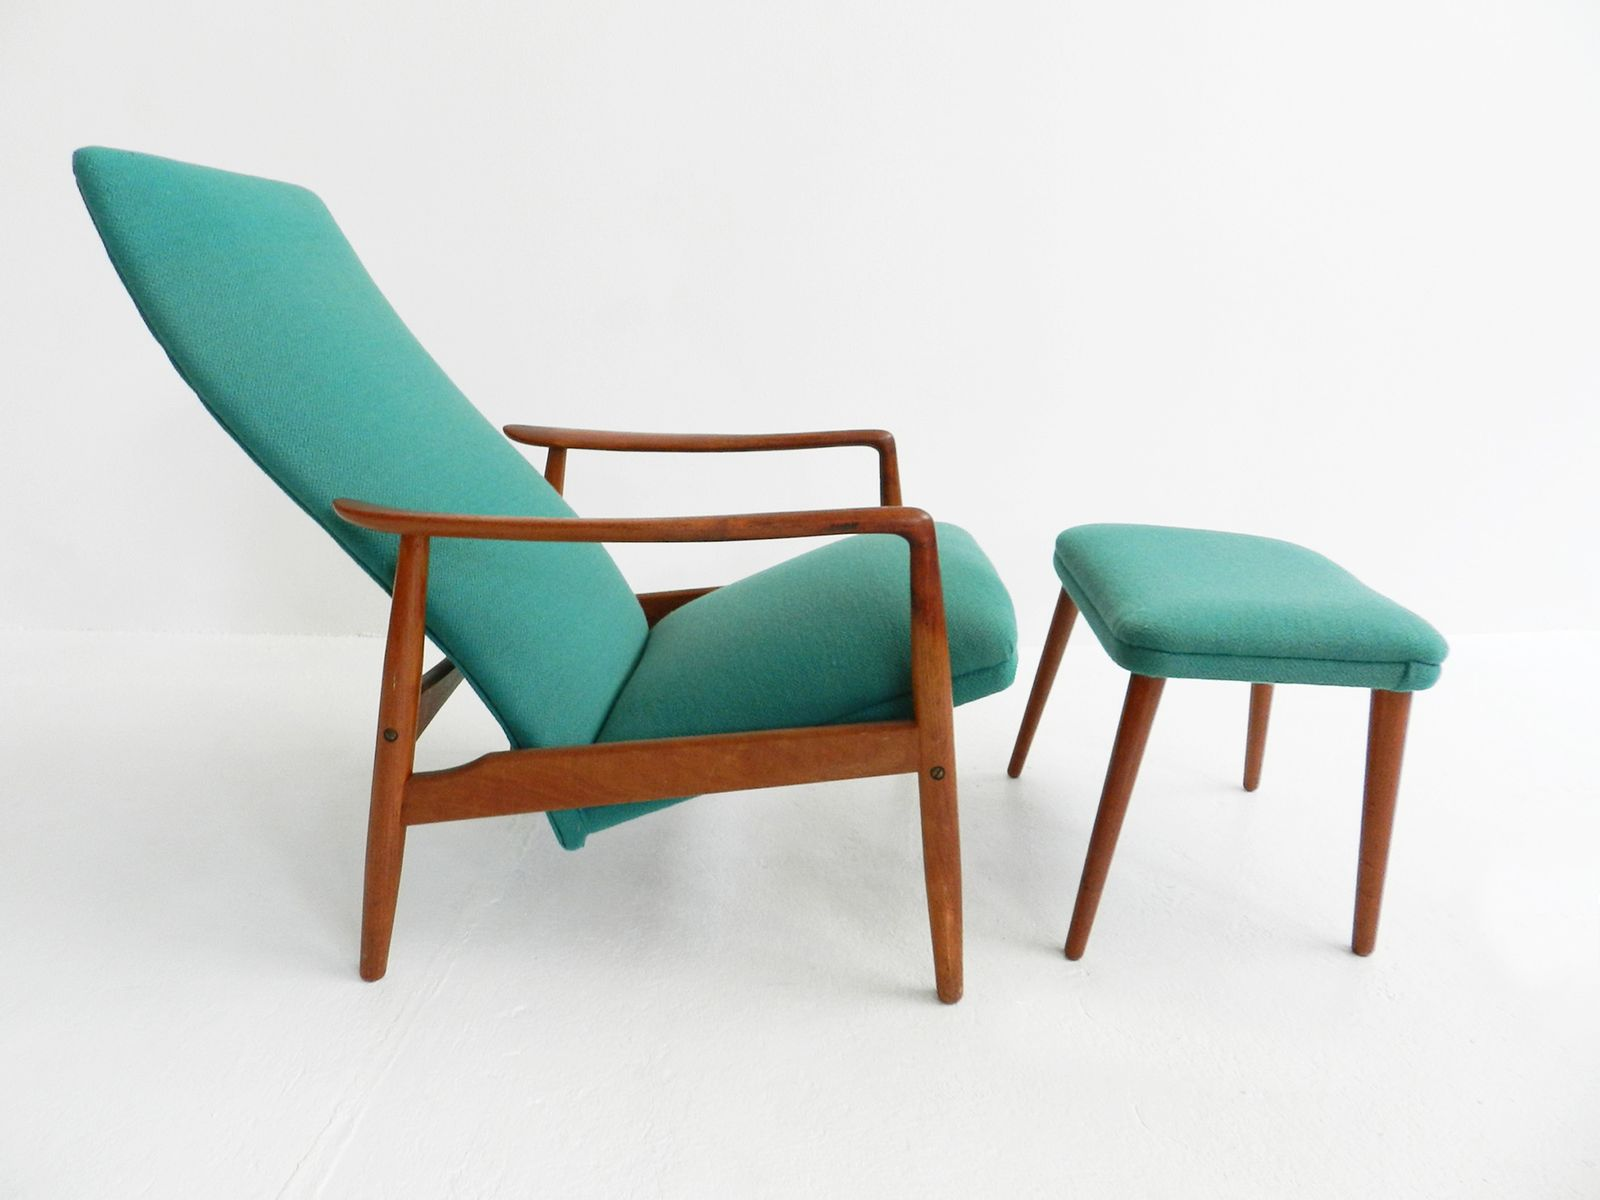 Danish Lounge Chair and Ottoman by Soren Ladefoged 1960s for sale